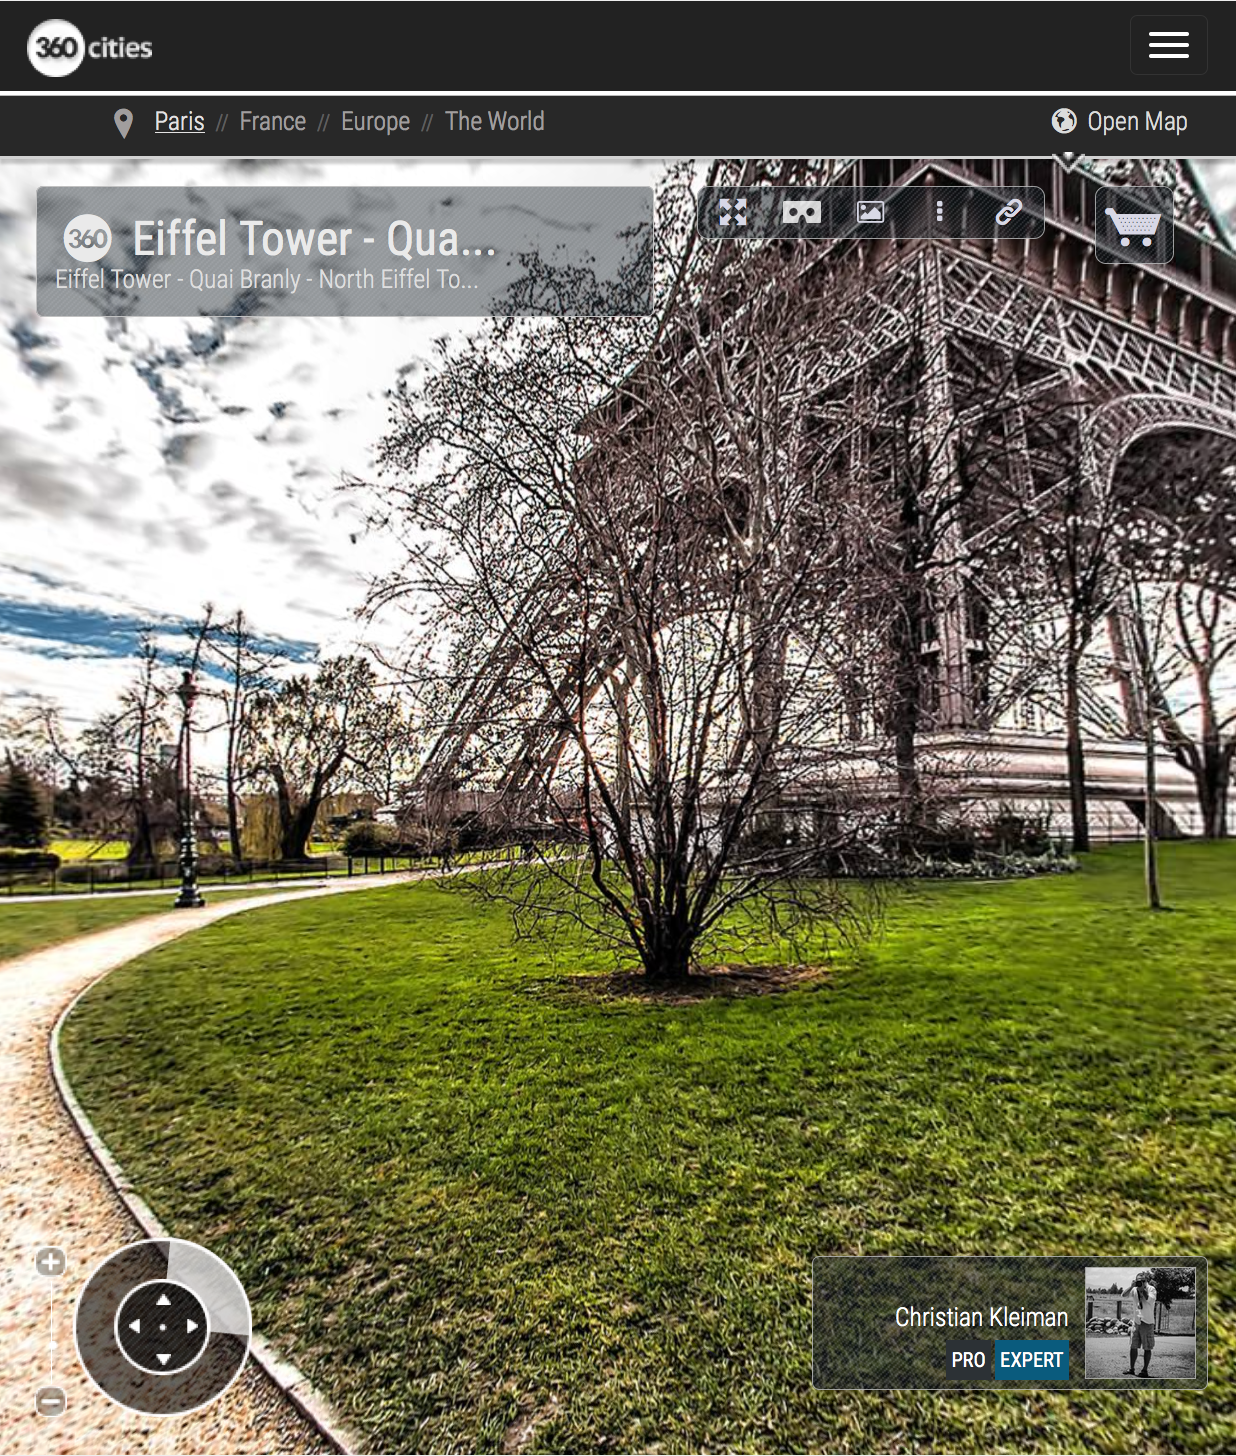 Eiffel Tower Paris - Quai Branly - North Eiffel Tower pillar - Creative 360 VR Panoramic Photography - Emblematic places in Paris by © Christian Kleiman